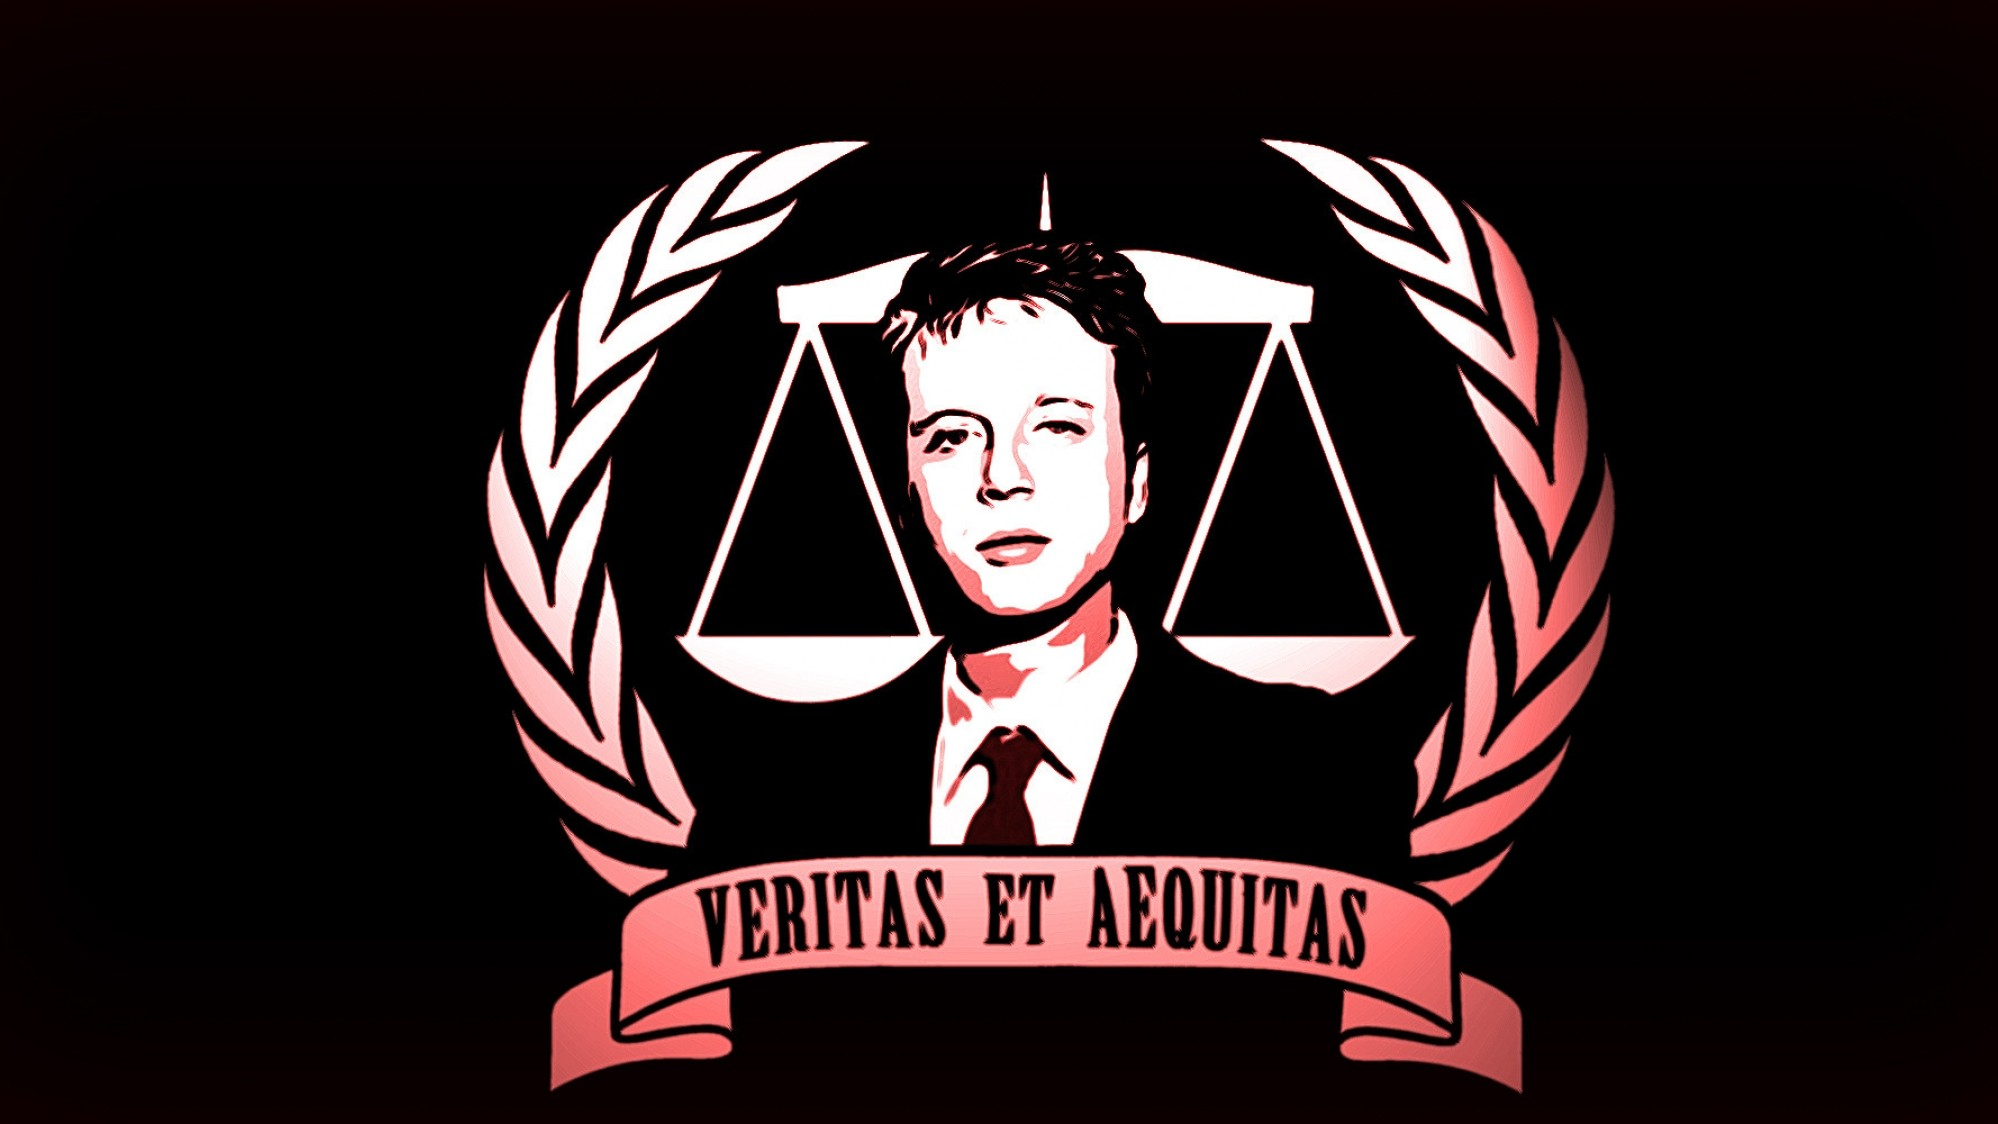 After Signing a Plea Deal, Barrett Brown Could Leave Prison This Year